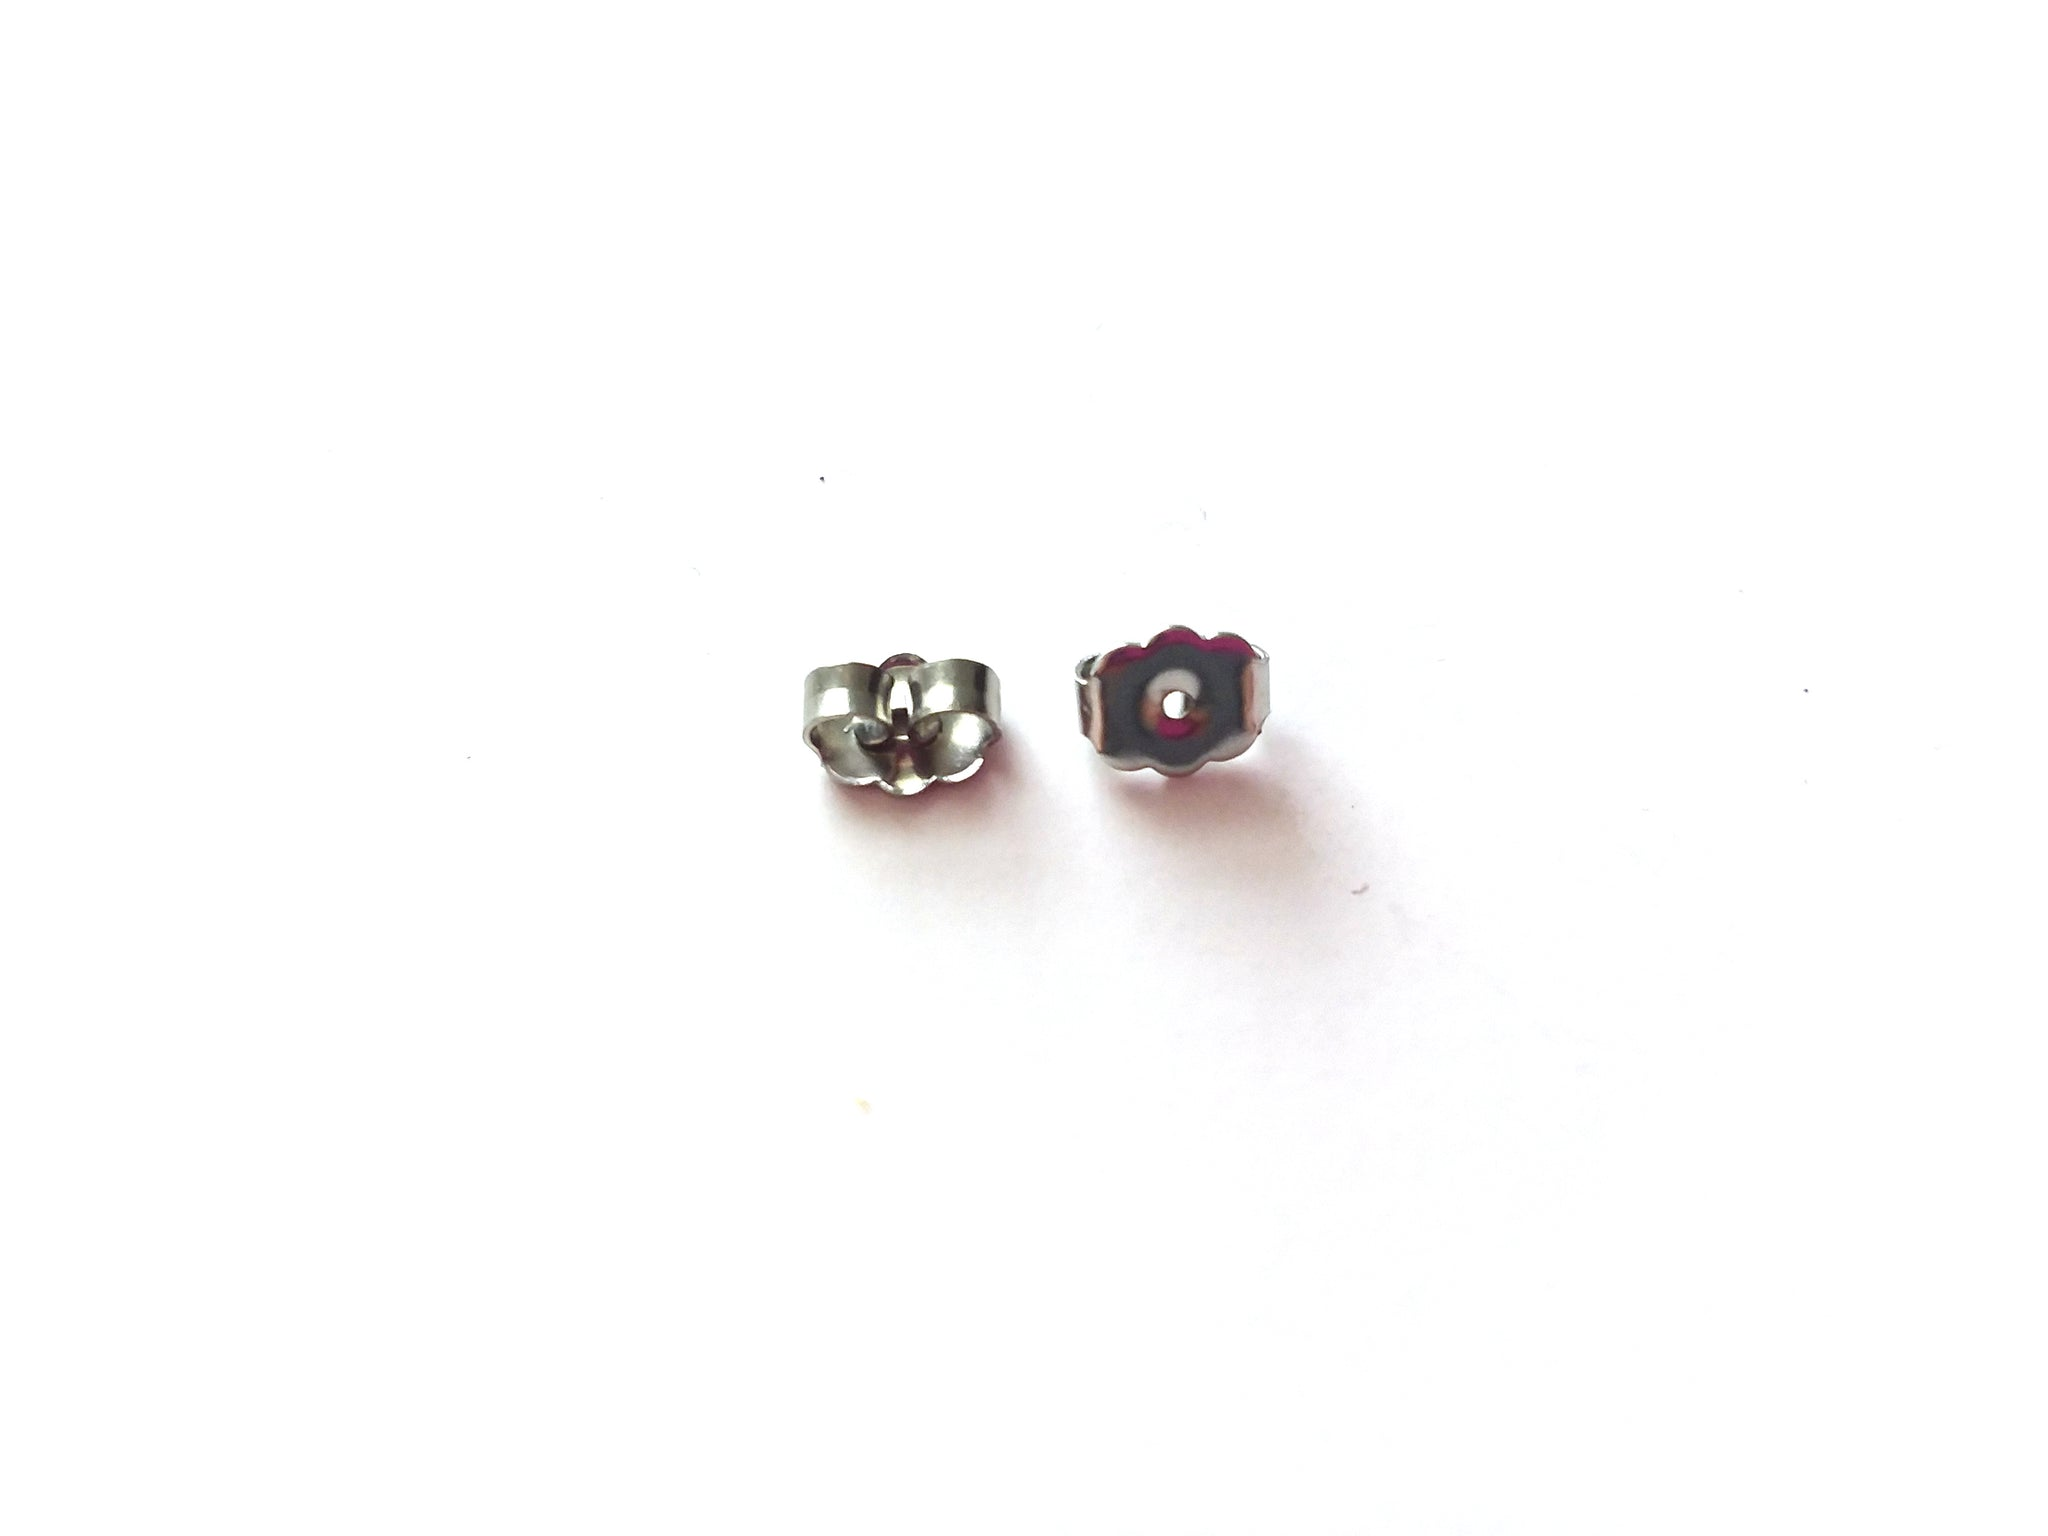 100 Silver Plated Stainless Steel Earnuts-Earring Backing